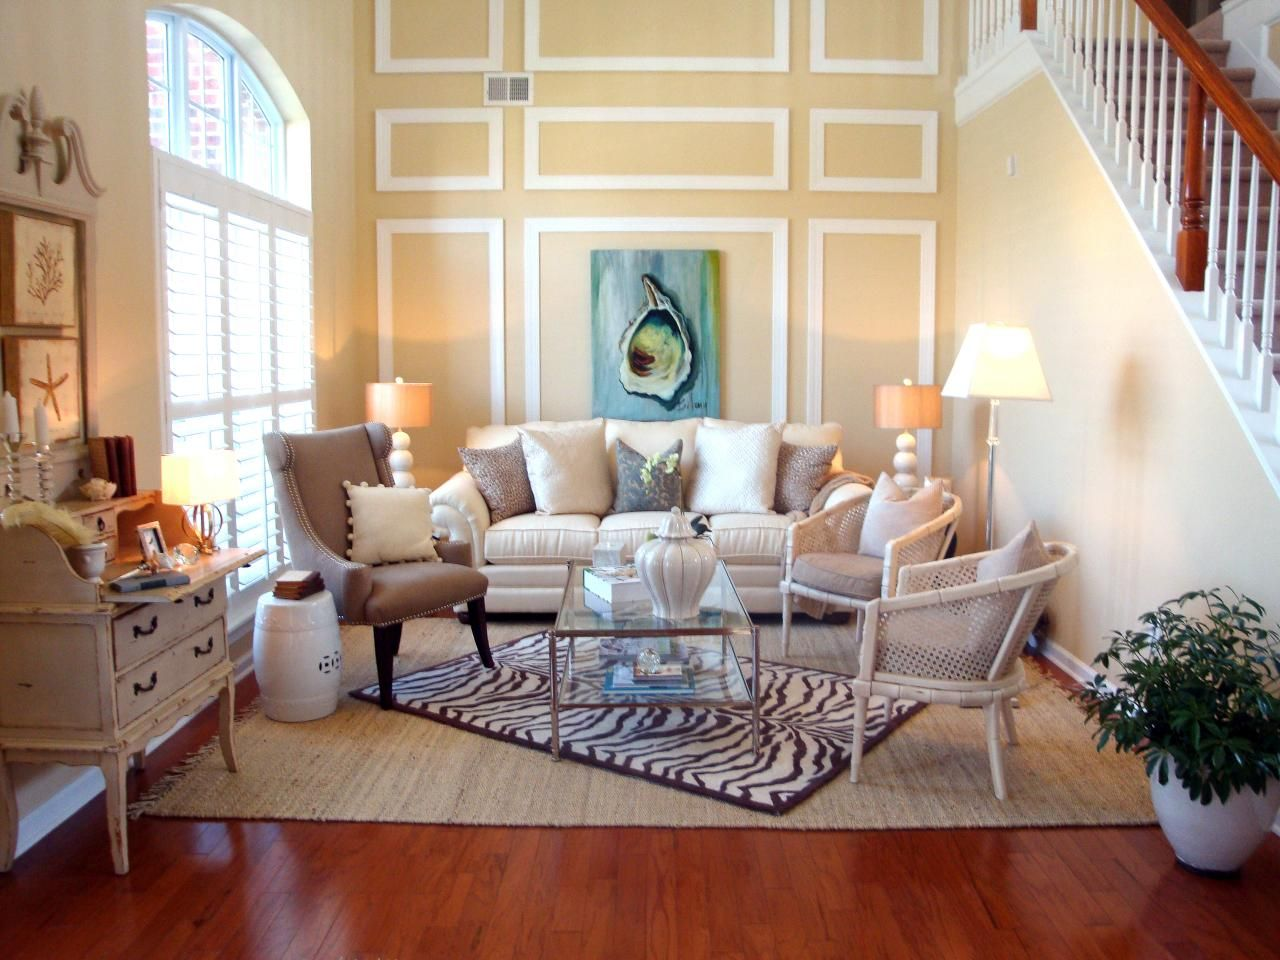 Coastal Decorating Ideas Shabby Chic Living RoomBeach